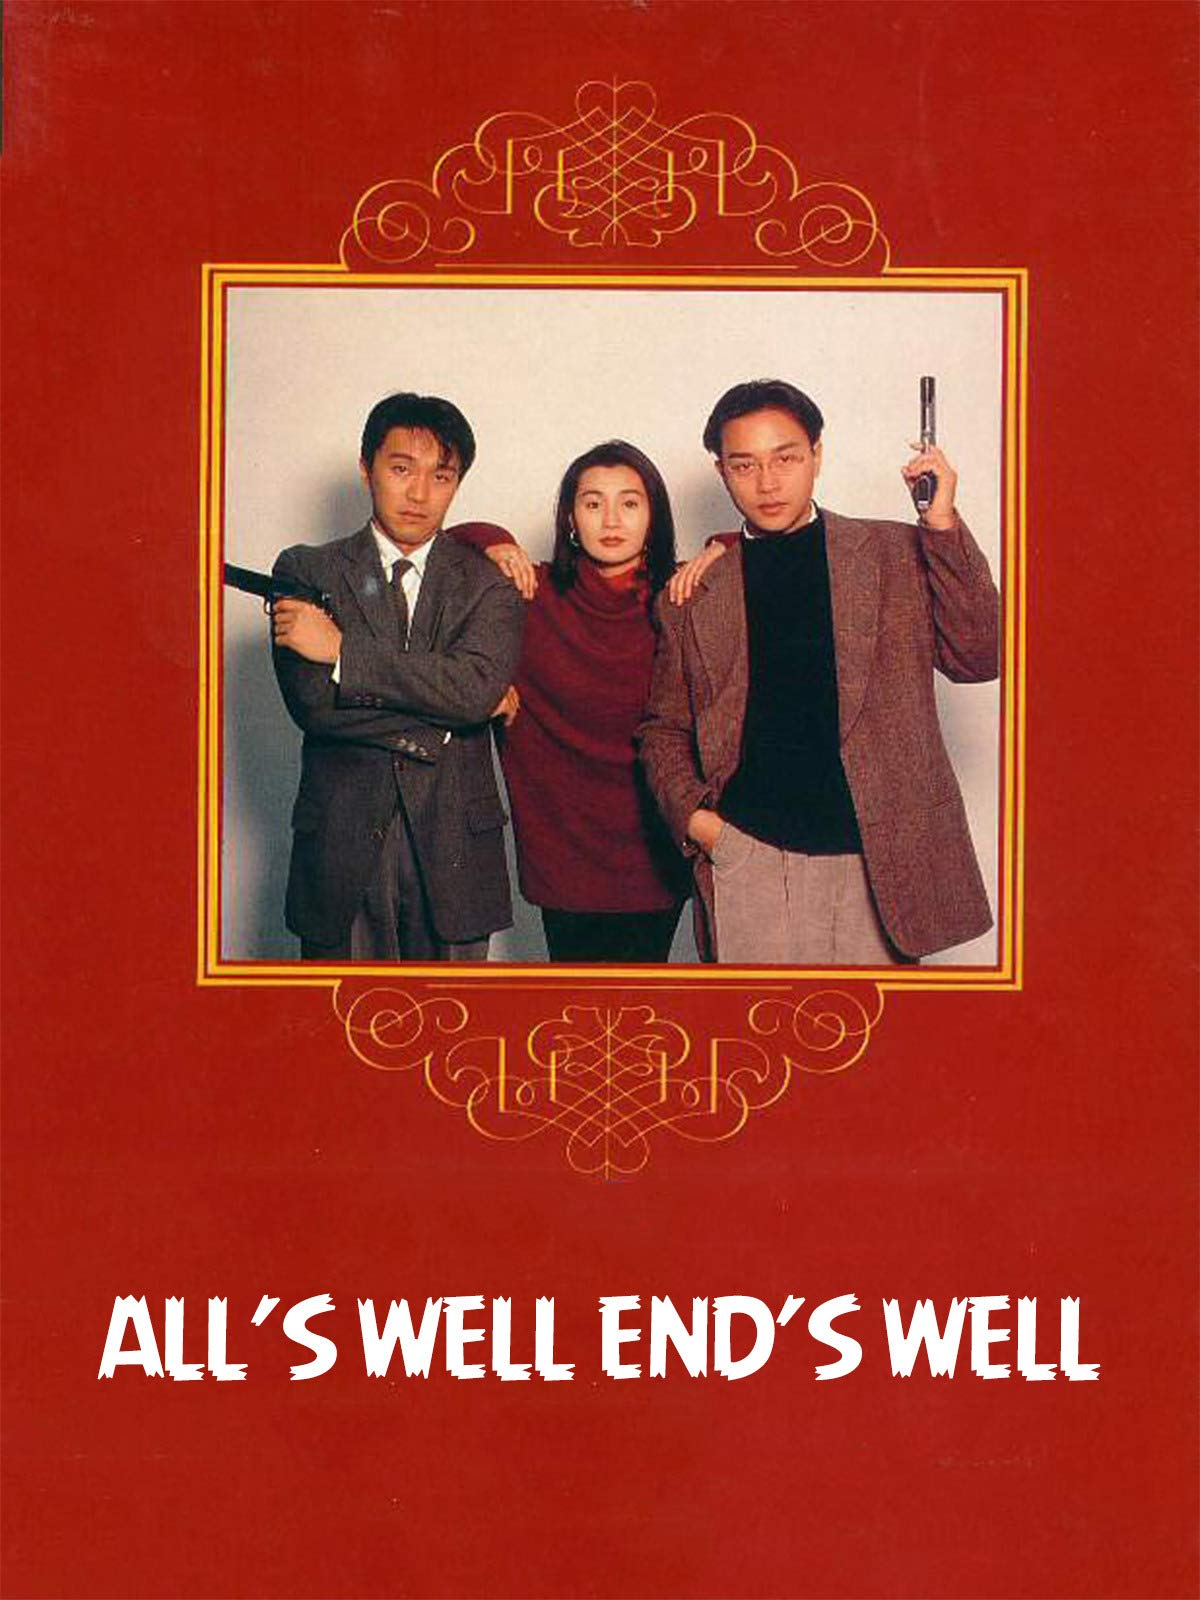 All's Well End's Well